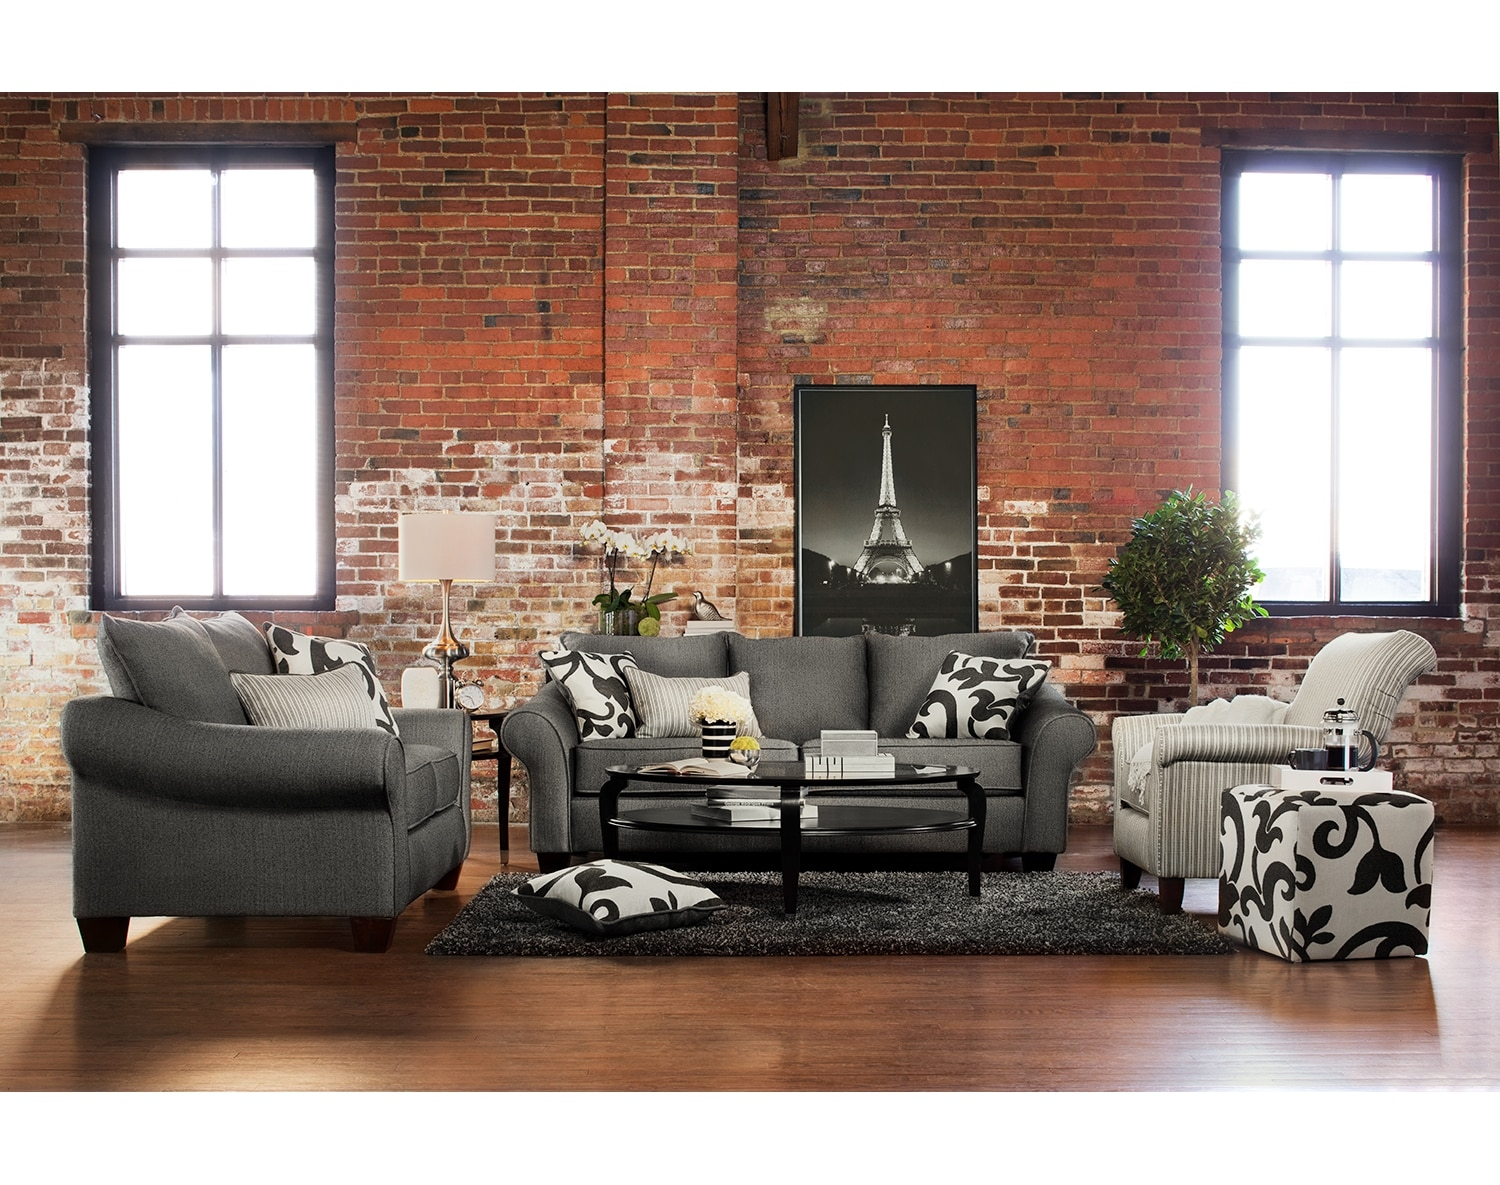 High Quality Living Room Furniture Brands Nakicphotography